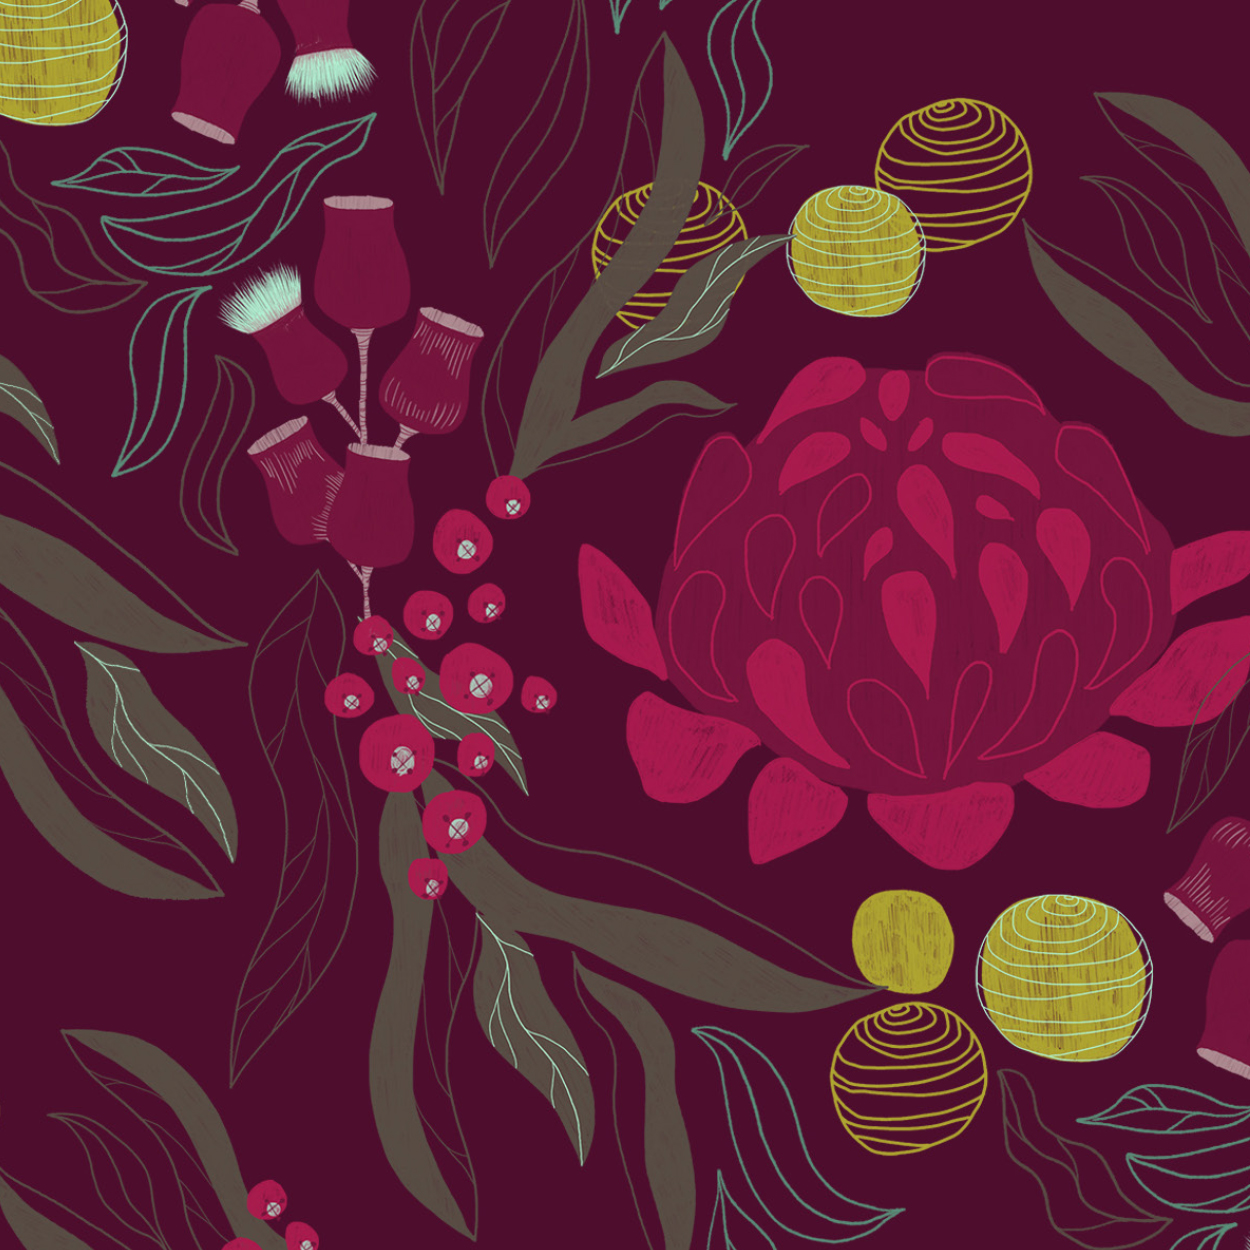 Wedding bespoke illustration floral asutraliana pattern